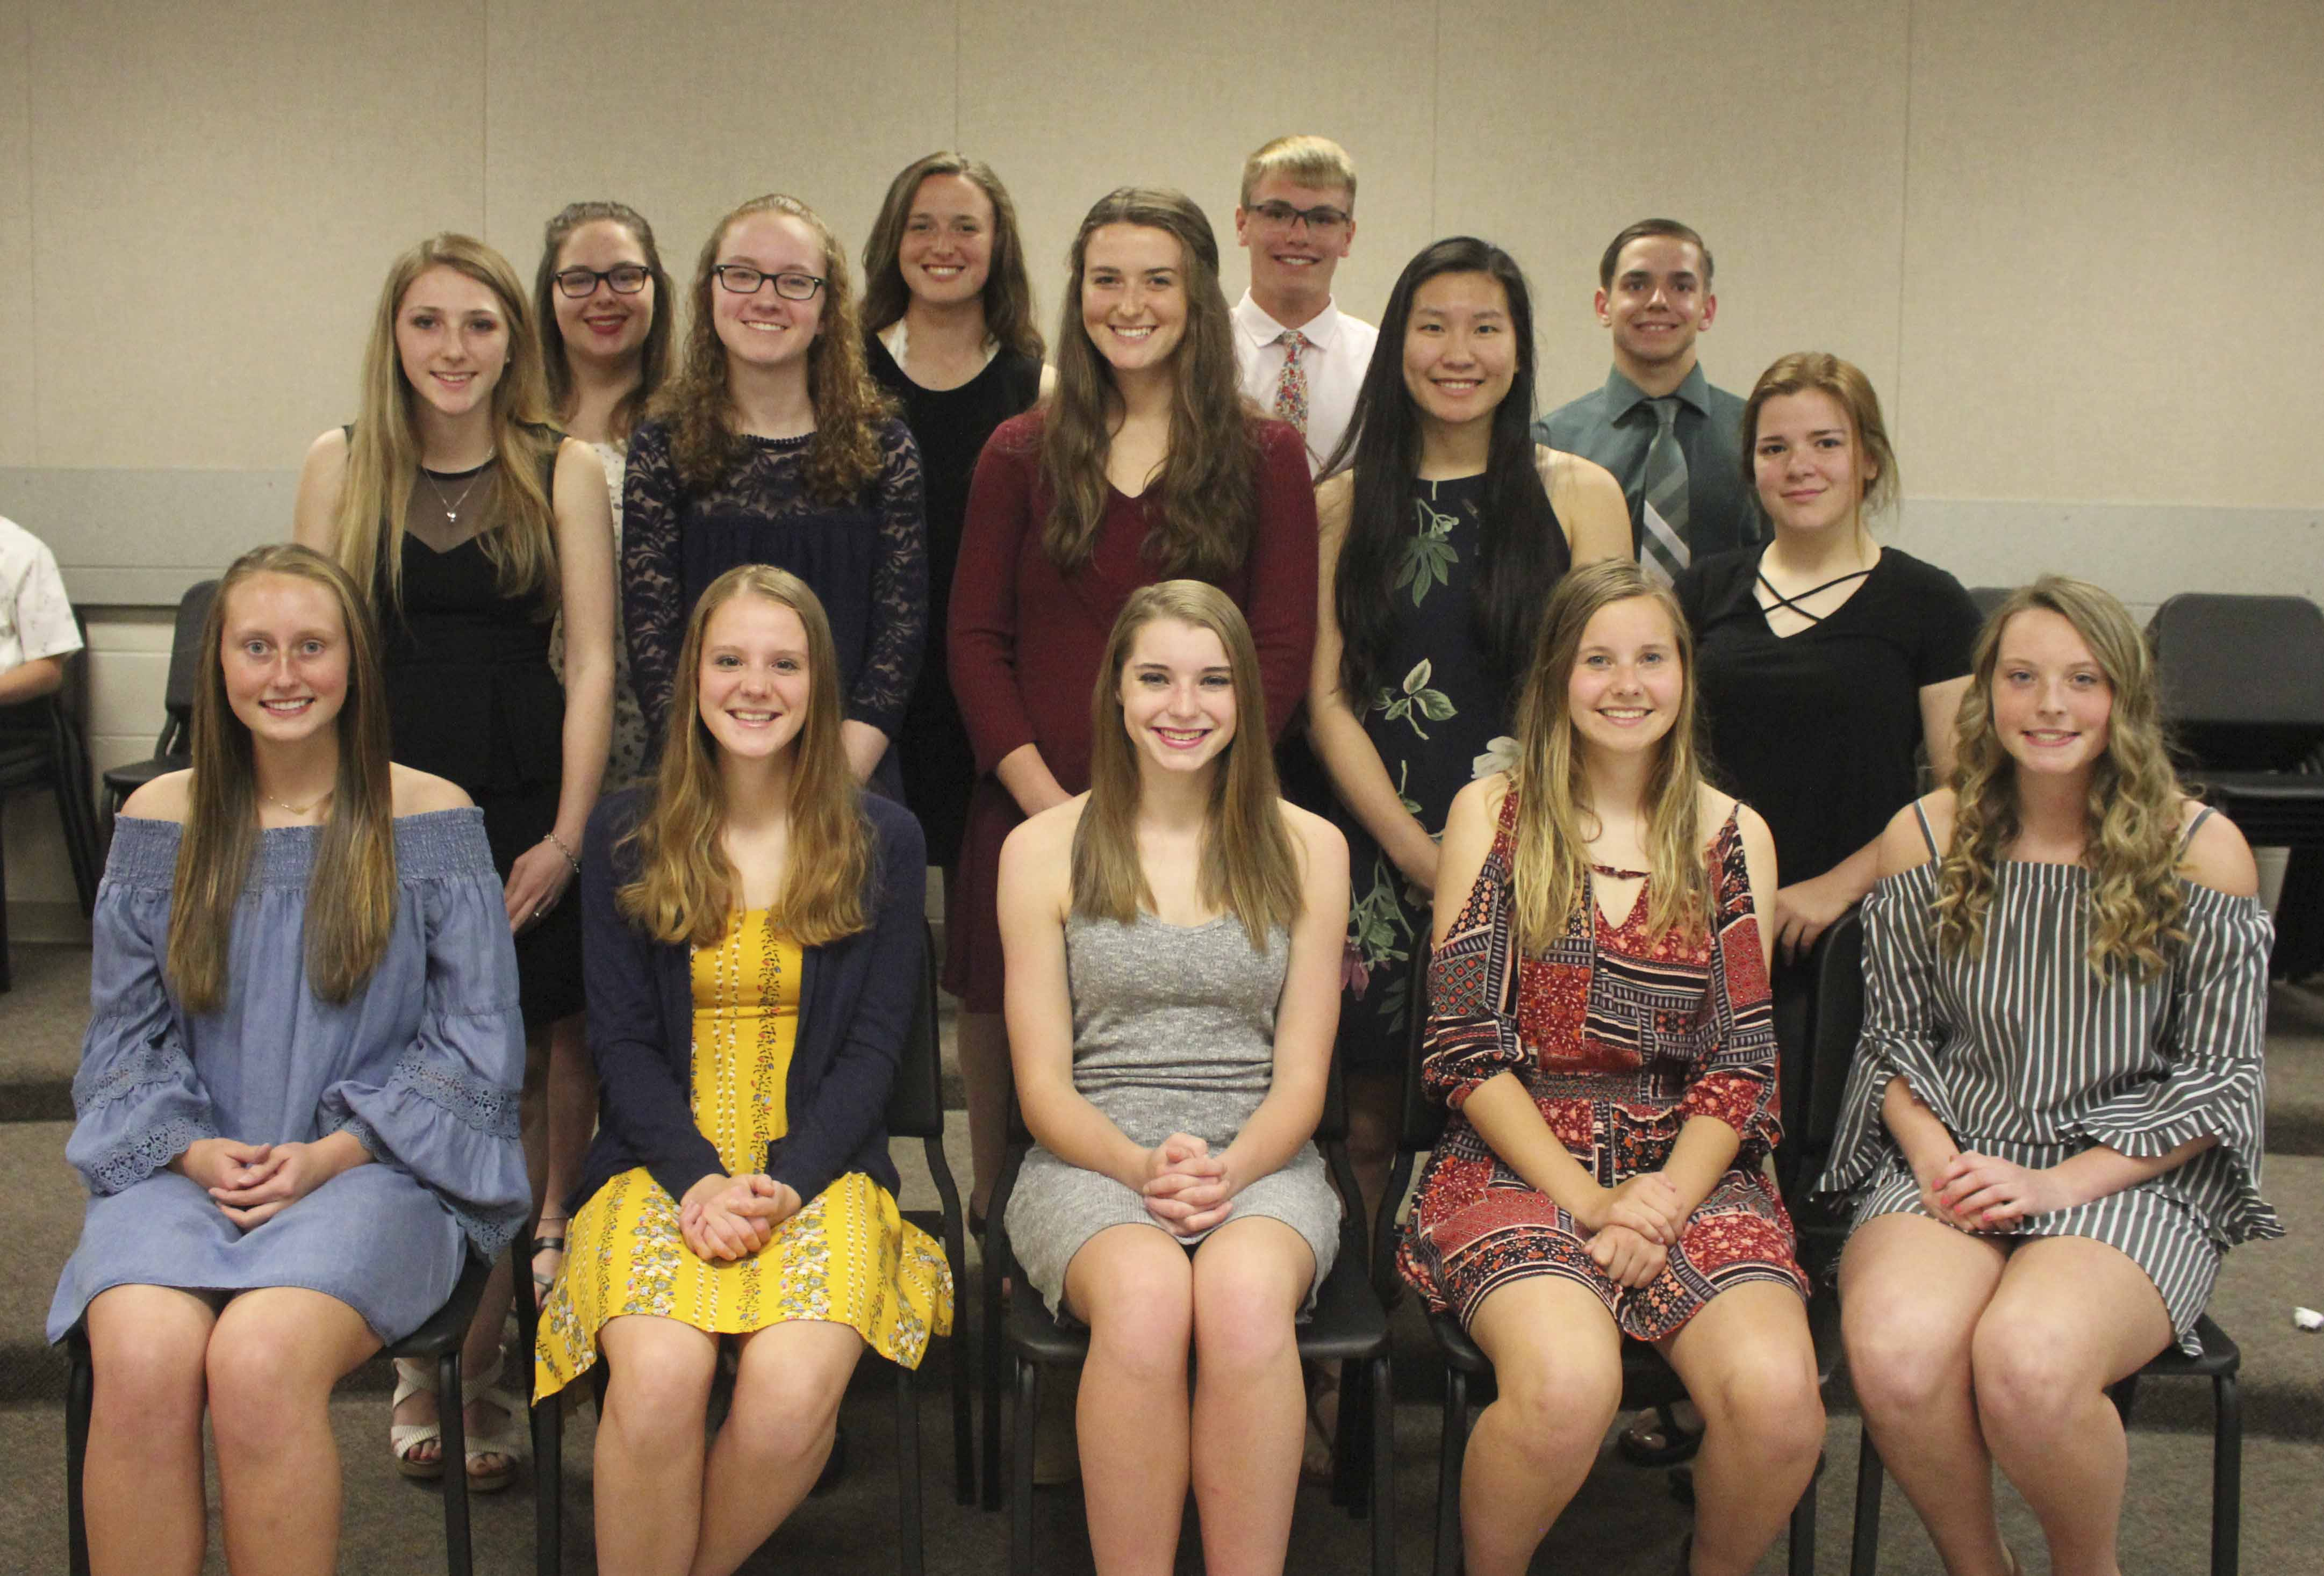 Monticello High School held its annual National Honor Society induction ceremony May 22. New members of the NHS include, first row from left: Aspen Gillmore, Natalie Newhard, Marisa Braford, Sophia Ahlrichs and Lydia Franzenburg. Second row: Keeley Anderson, Madelyn Barkema, Chloe Gray, Clara Finger and Brianna Burmahl. Third row: Olivia Goodyear, Sophie Gray, Gavin Cooper and Brody Brokaw. (Photos by Pete Temple)